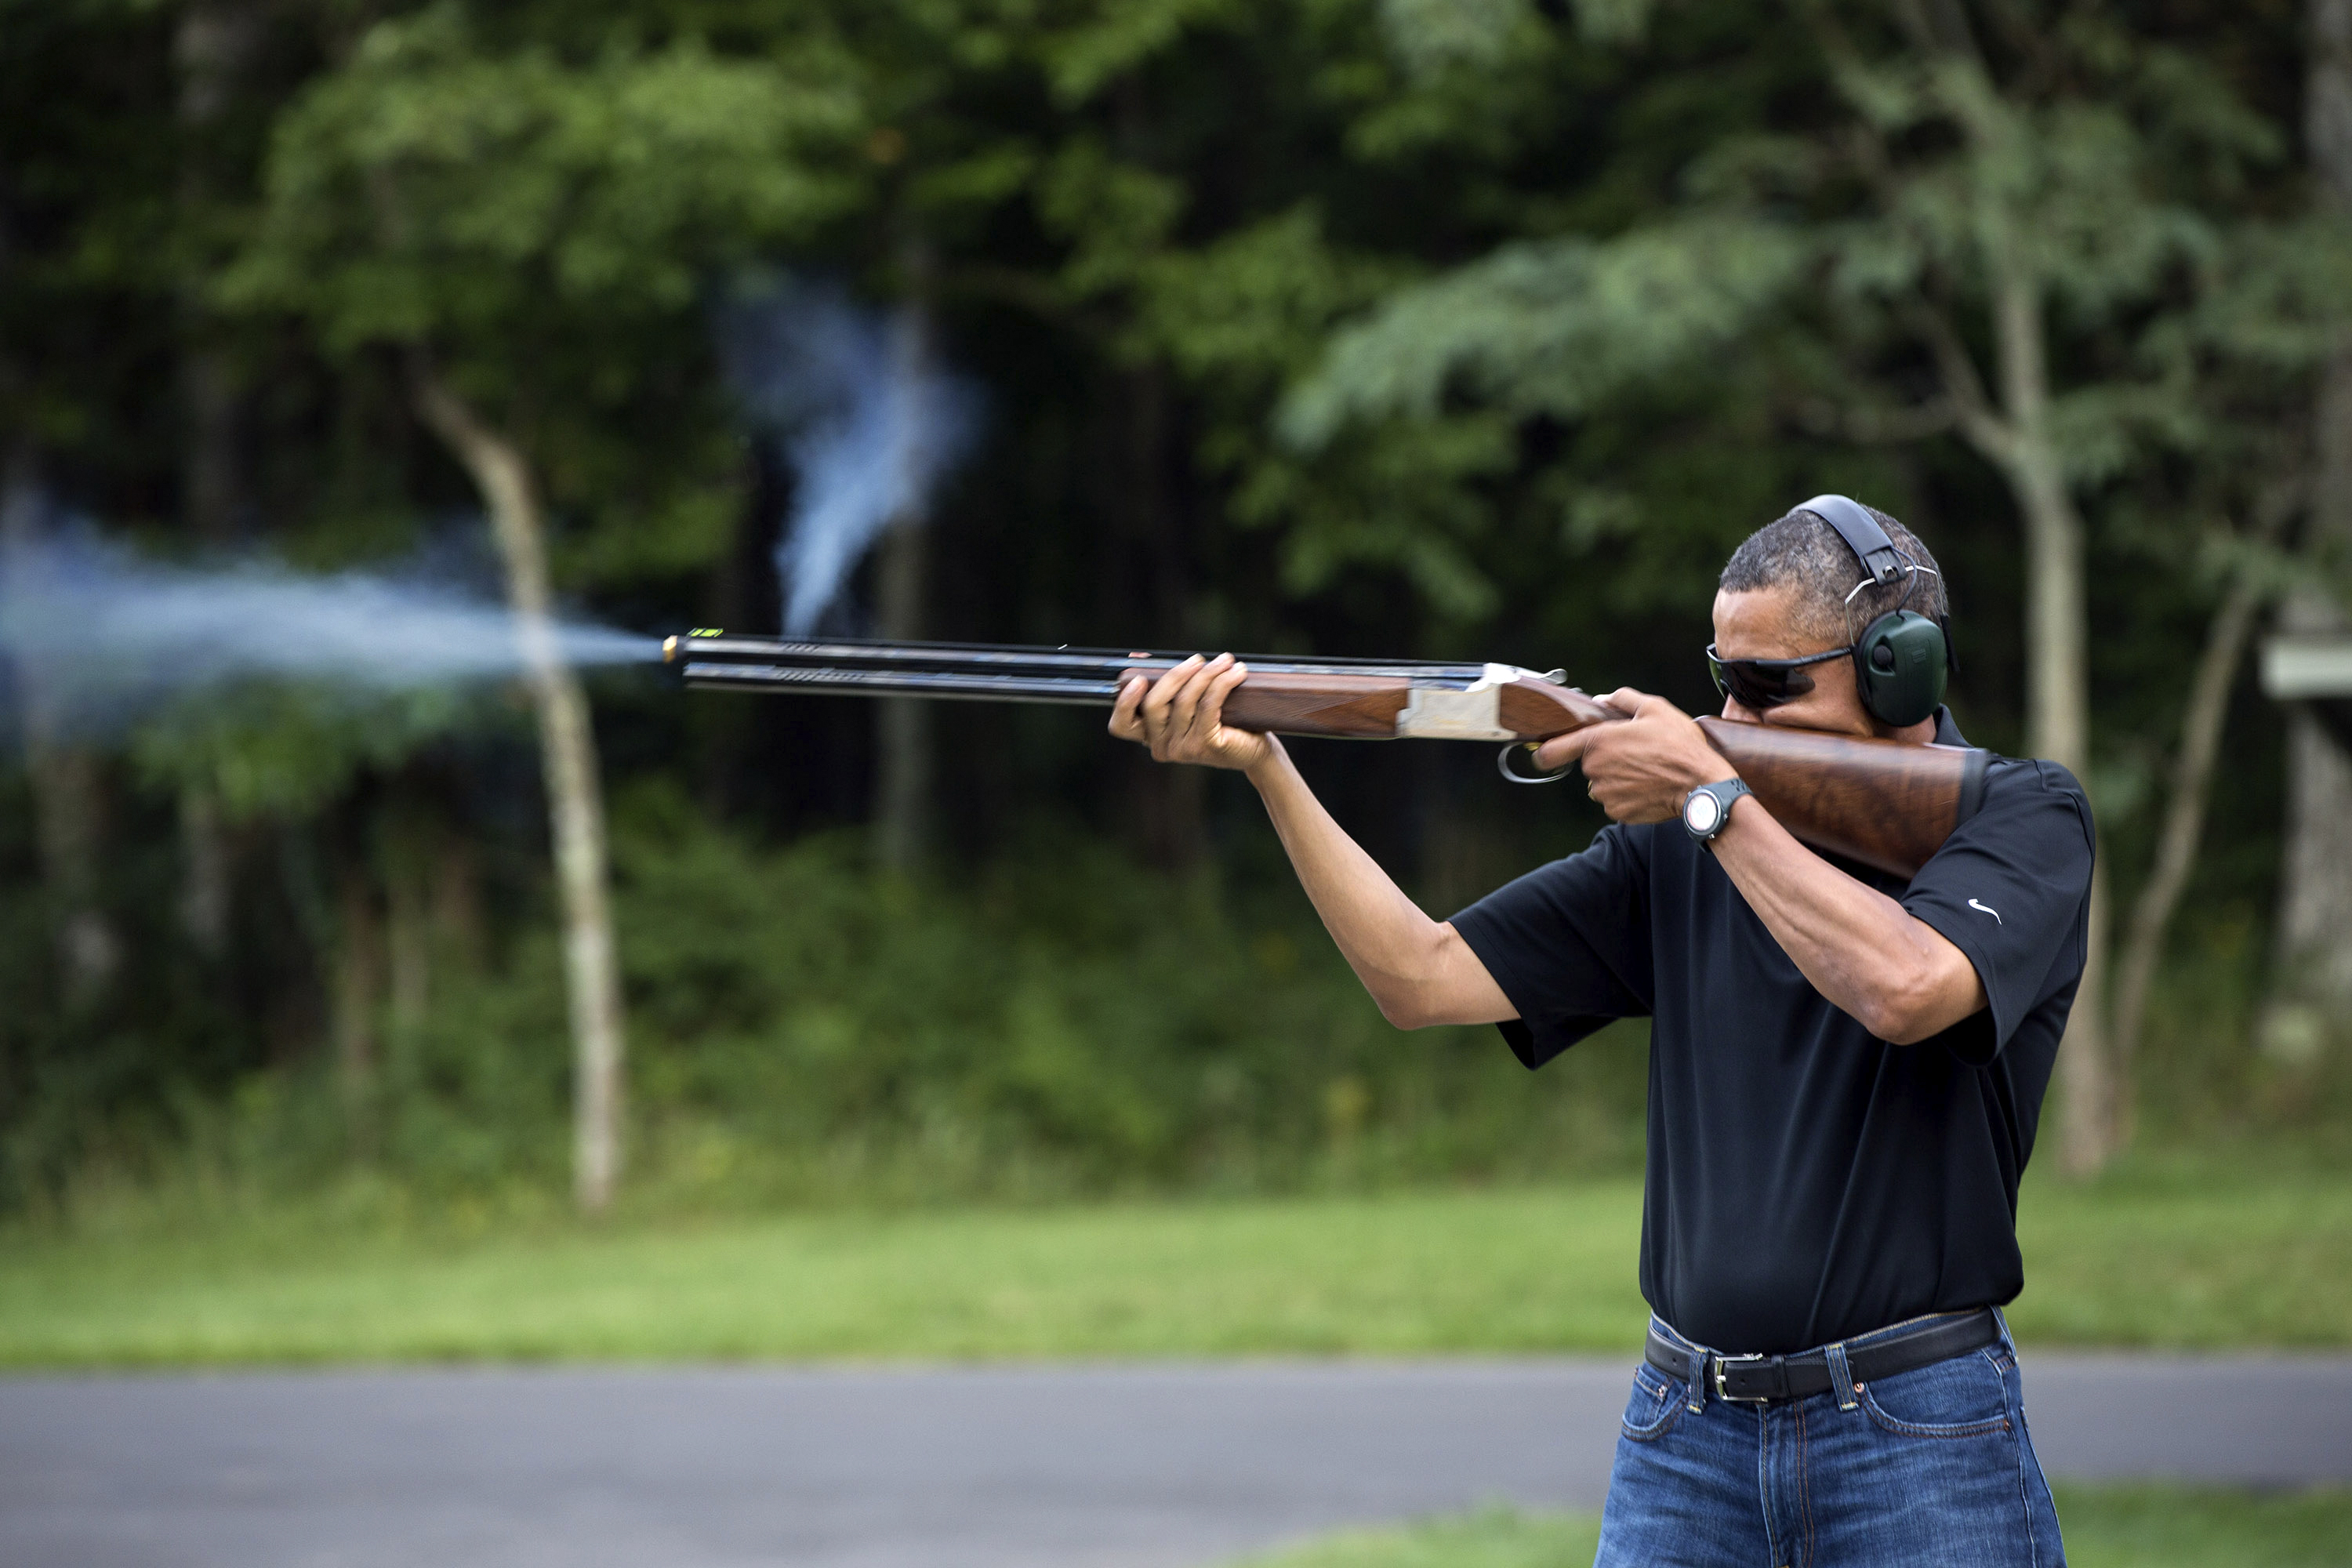 In this photo released by the White House, President Barack Obama shoots clay targets on the range at Camp David, Md., Saturday, Aug. 4, 2012. The White House released a photo of Obama firing a gun, t